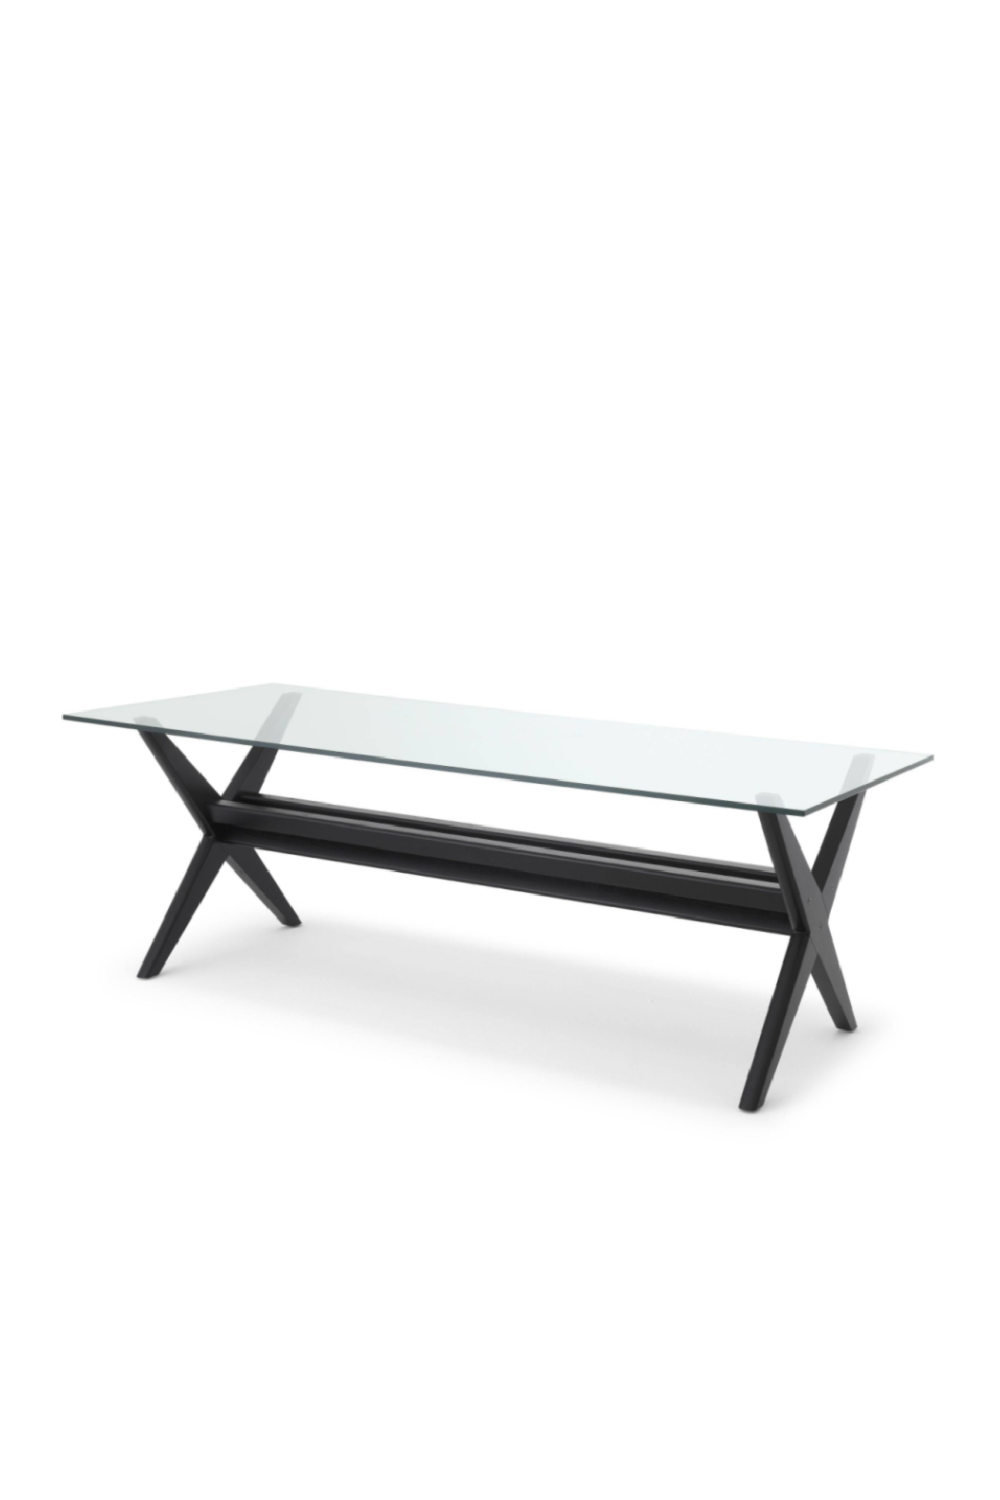 Black X-Shaped Legs Dining Table | Eichholtz Maynor